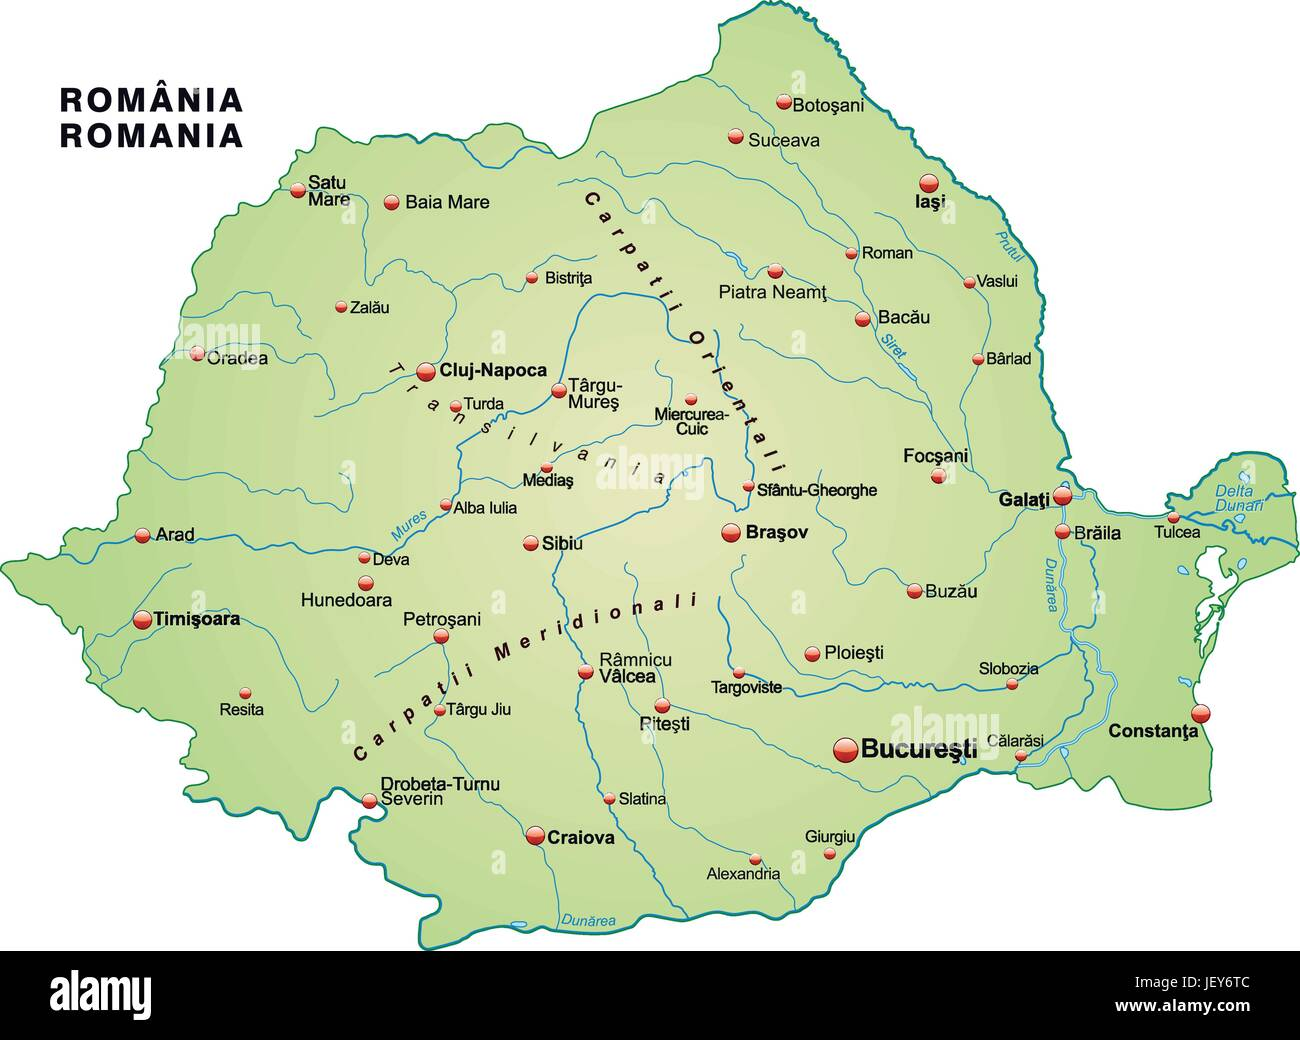 Card outline romania borders atlas map of the world map stock card outline romania borders atlas map of the world map rumnienkarte gumiabroncs Choice Image